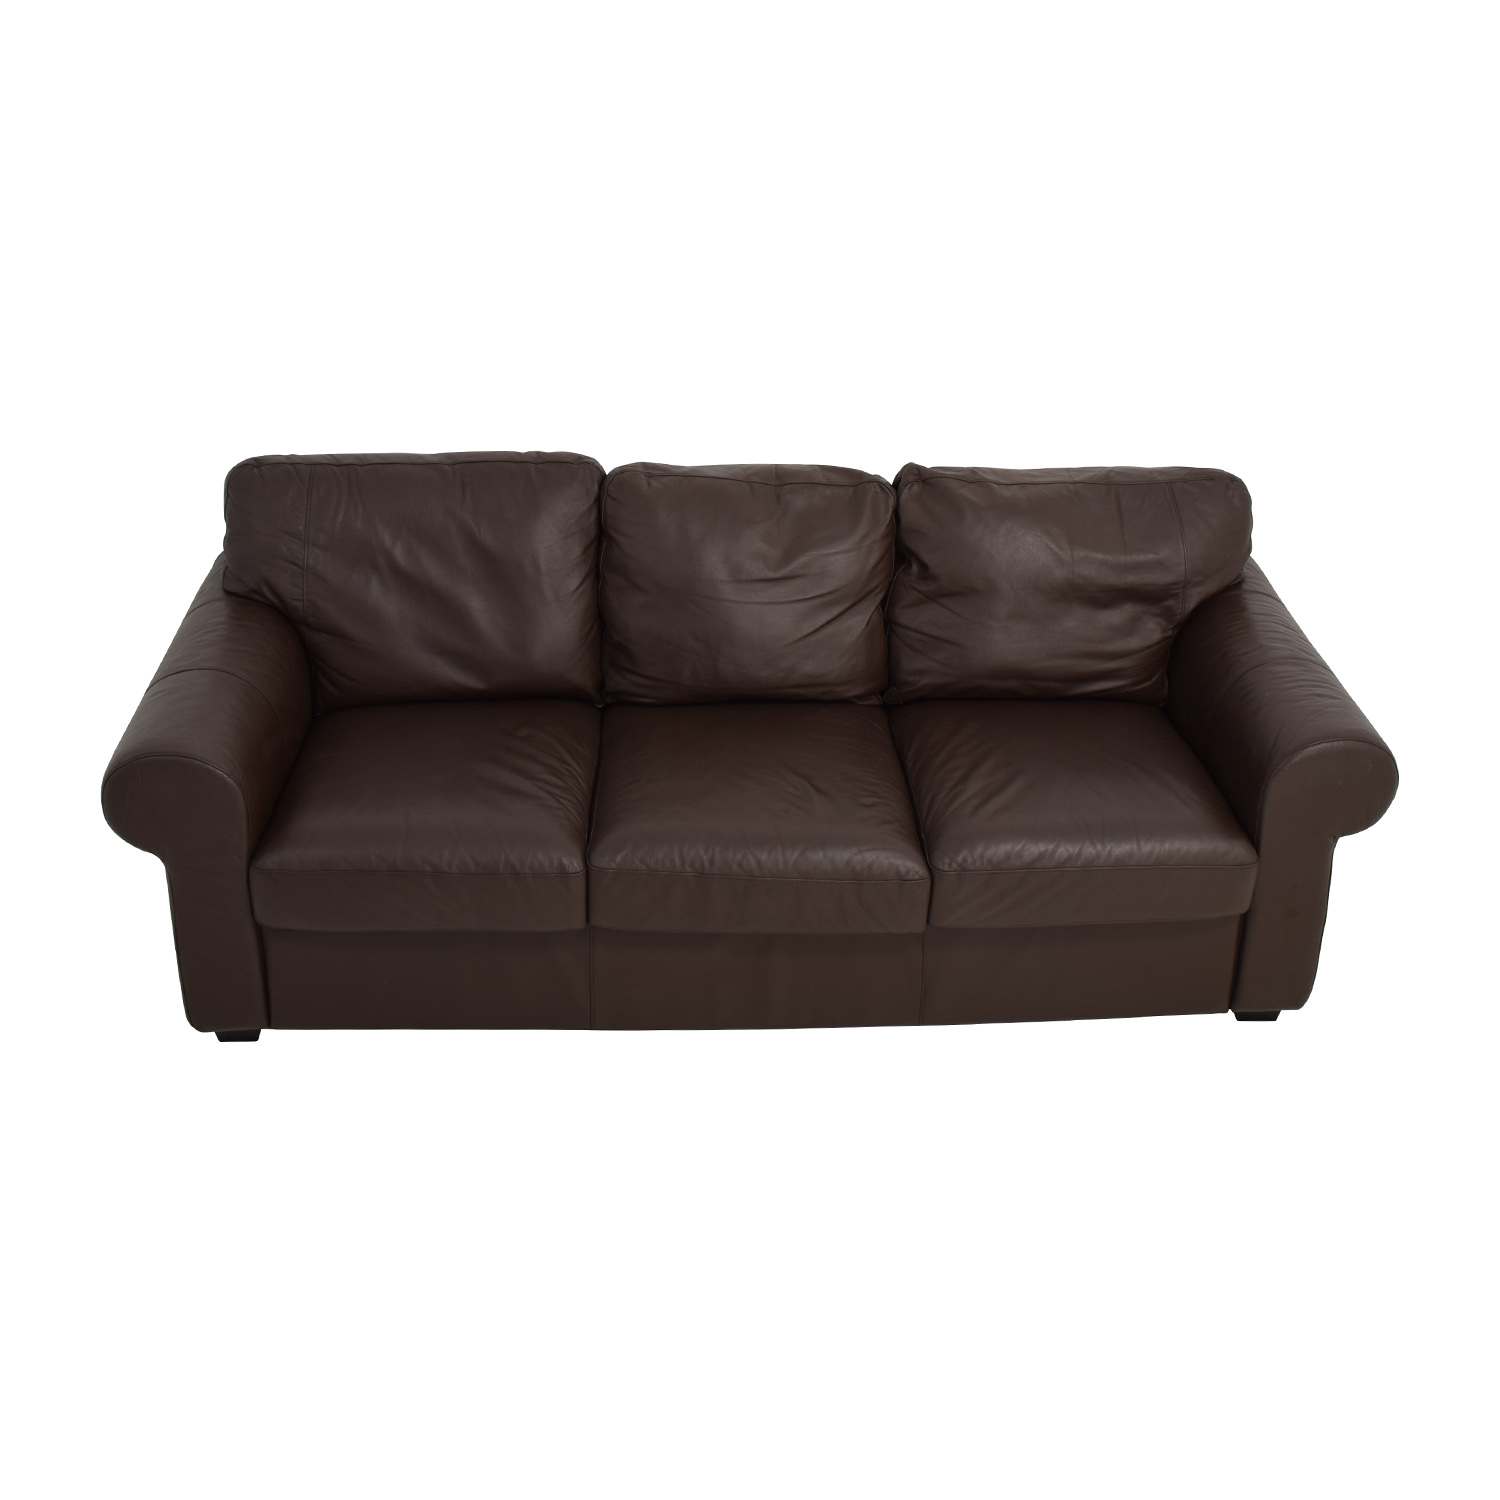 62 Off Ikea Dark Brown Three Cushion Leather Couch Sofas